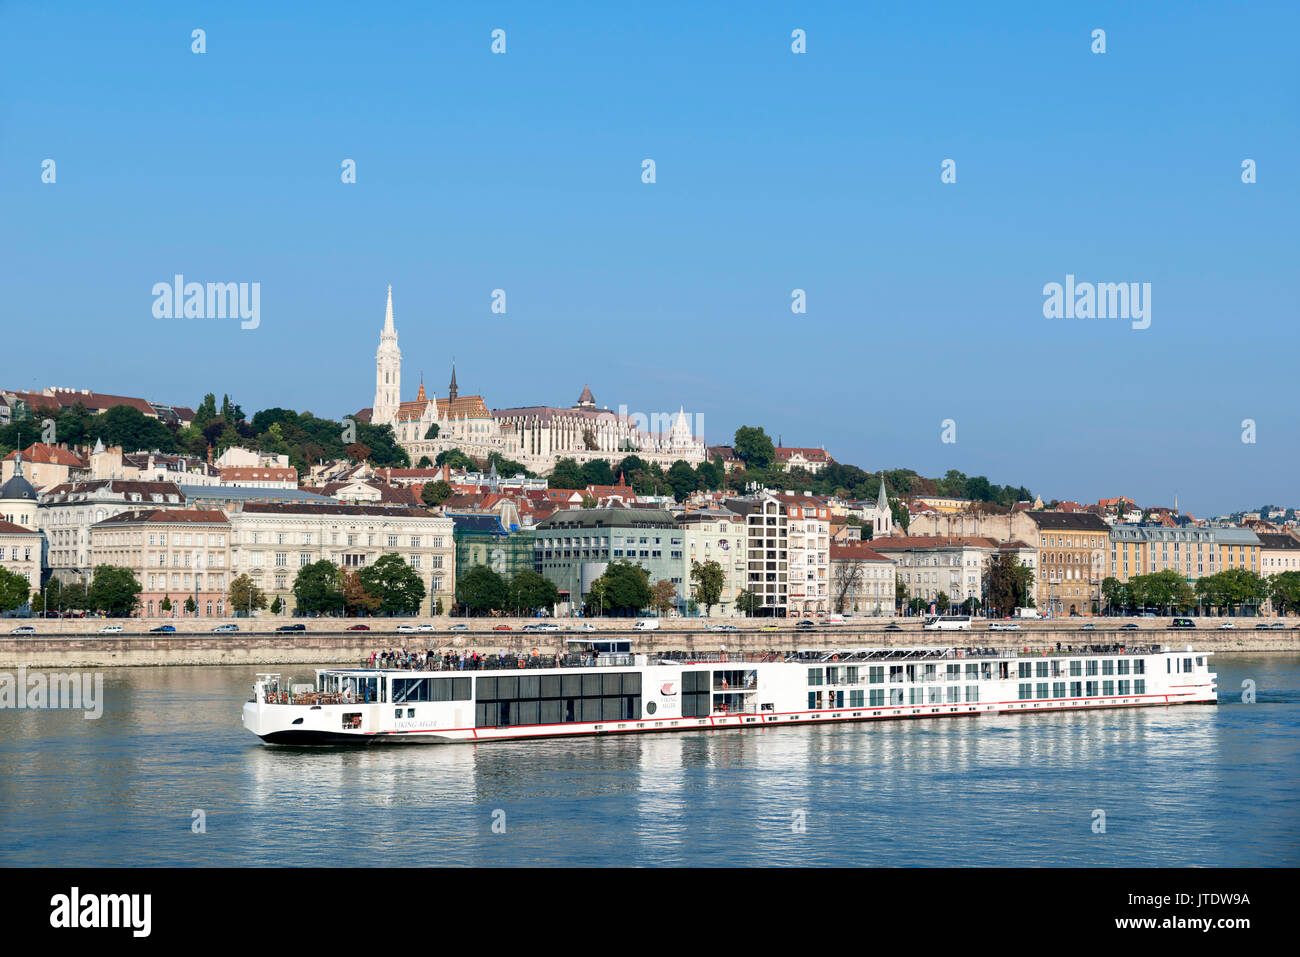 Viking River Cruises boat on the River Danube with Matthias Church and Fishermen's Bastion on Castle Hill behind, Budapest, Hungary - Stock Image